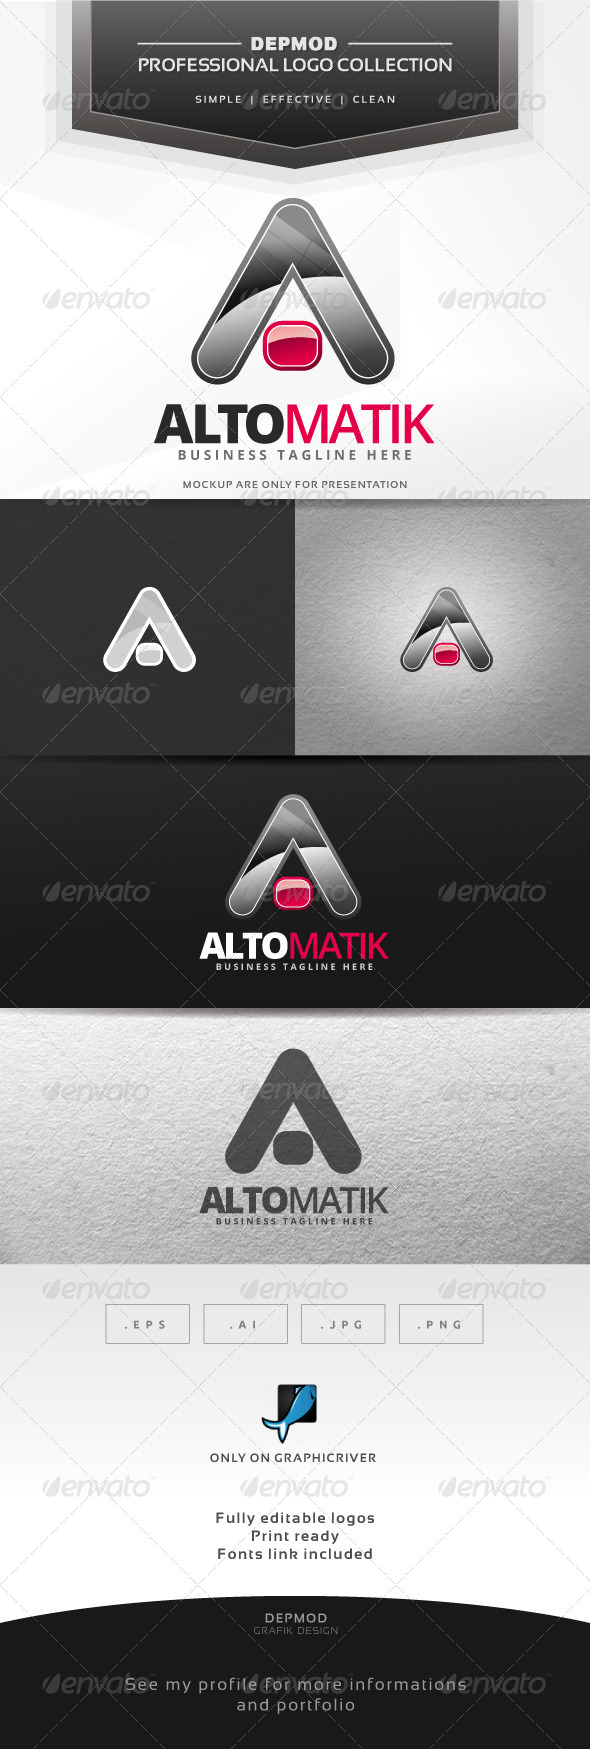 GraphicRiver Altomatik Logo 7637399